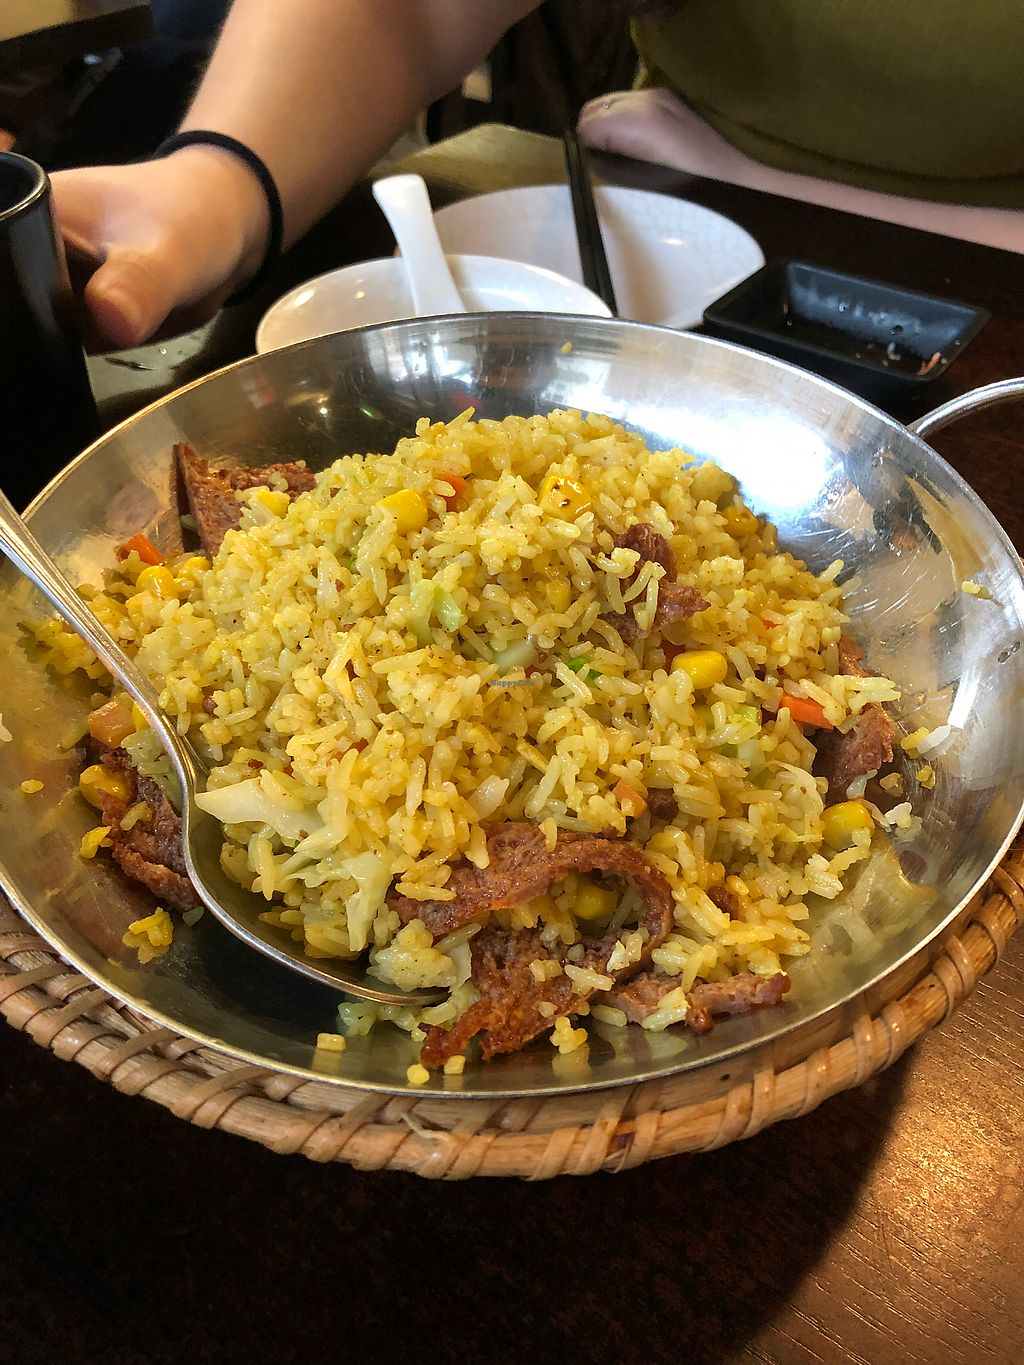 "Photo of Ying Vegetarian  by <a href=""/members/profile/gen0co"">gen0co</a> <br/>Beef fried rice <br/> January 7, 2018  - <a href='/contact/abuse/image/29307/344026'>Report</a>"